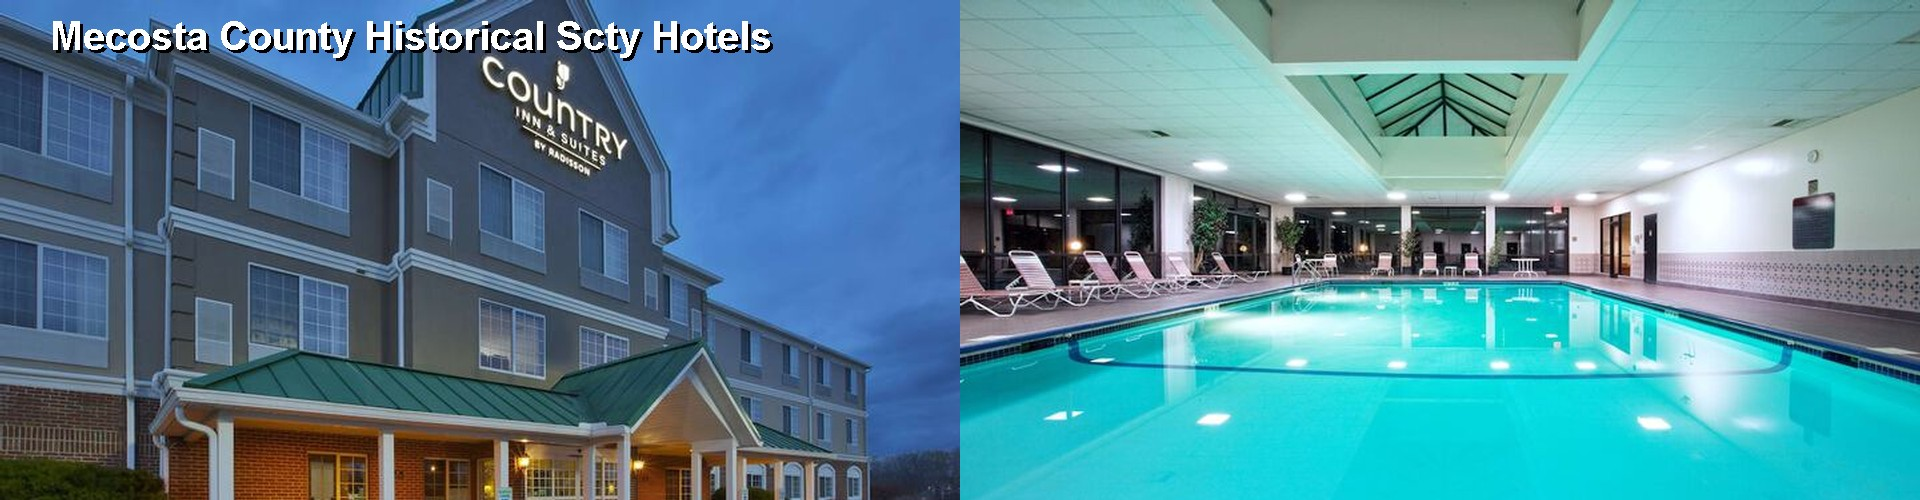 4 Best Hotels near Mecosta County Historical Scty